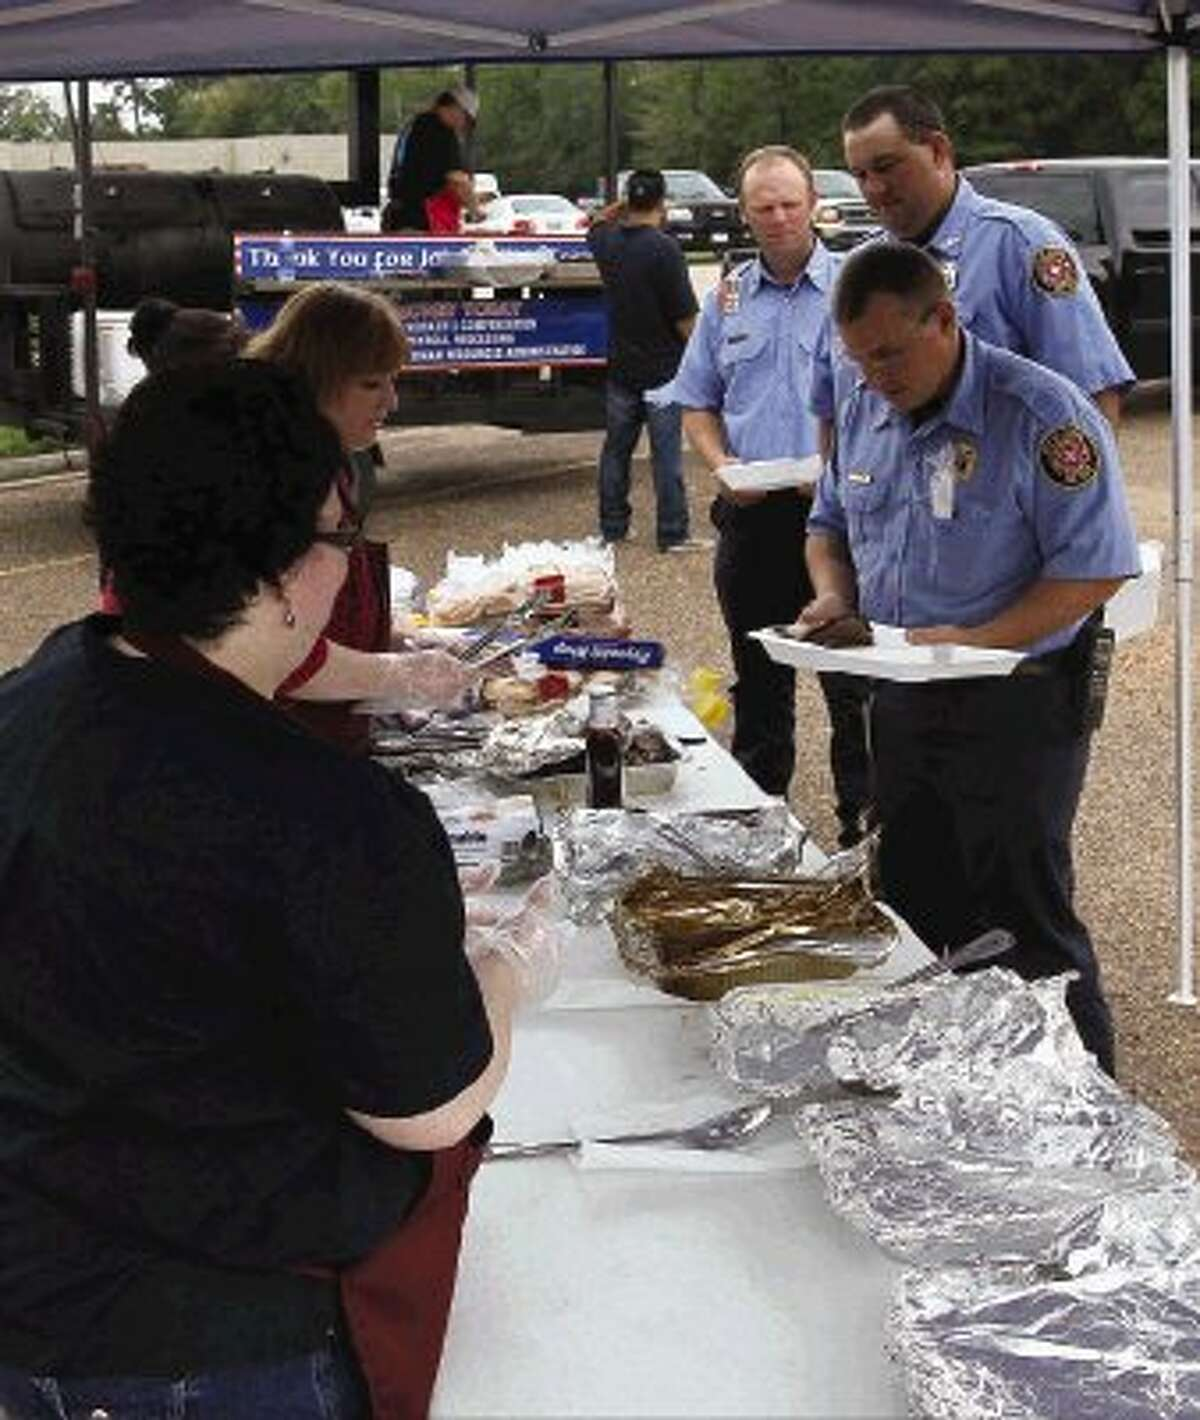 Conroe Police Officers Thomas Chavis, Phillip Johnson and Andy Bay receive food during a lunch for Conroe law enforcement and emergency workers Tuesday. Questco Companies sponsored the barbecue lunch for around 100 people in honor of law enforcement and emergency personnel involvement in the Sept. 11, 2001, terrorist attacks, which occurred 12 years ago today. Questco employees also donated several stuffed animals for emergency workers, police officers and firefighters to give to children they come in contact with while working.